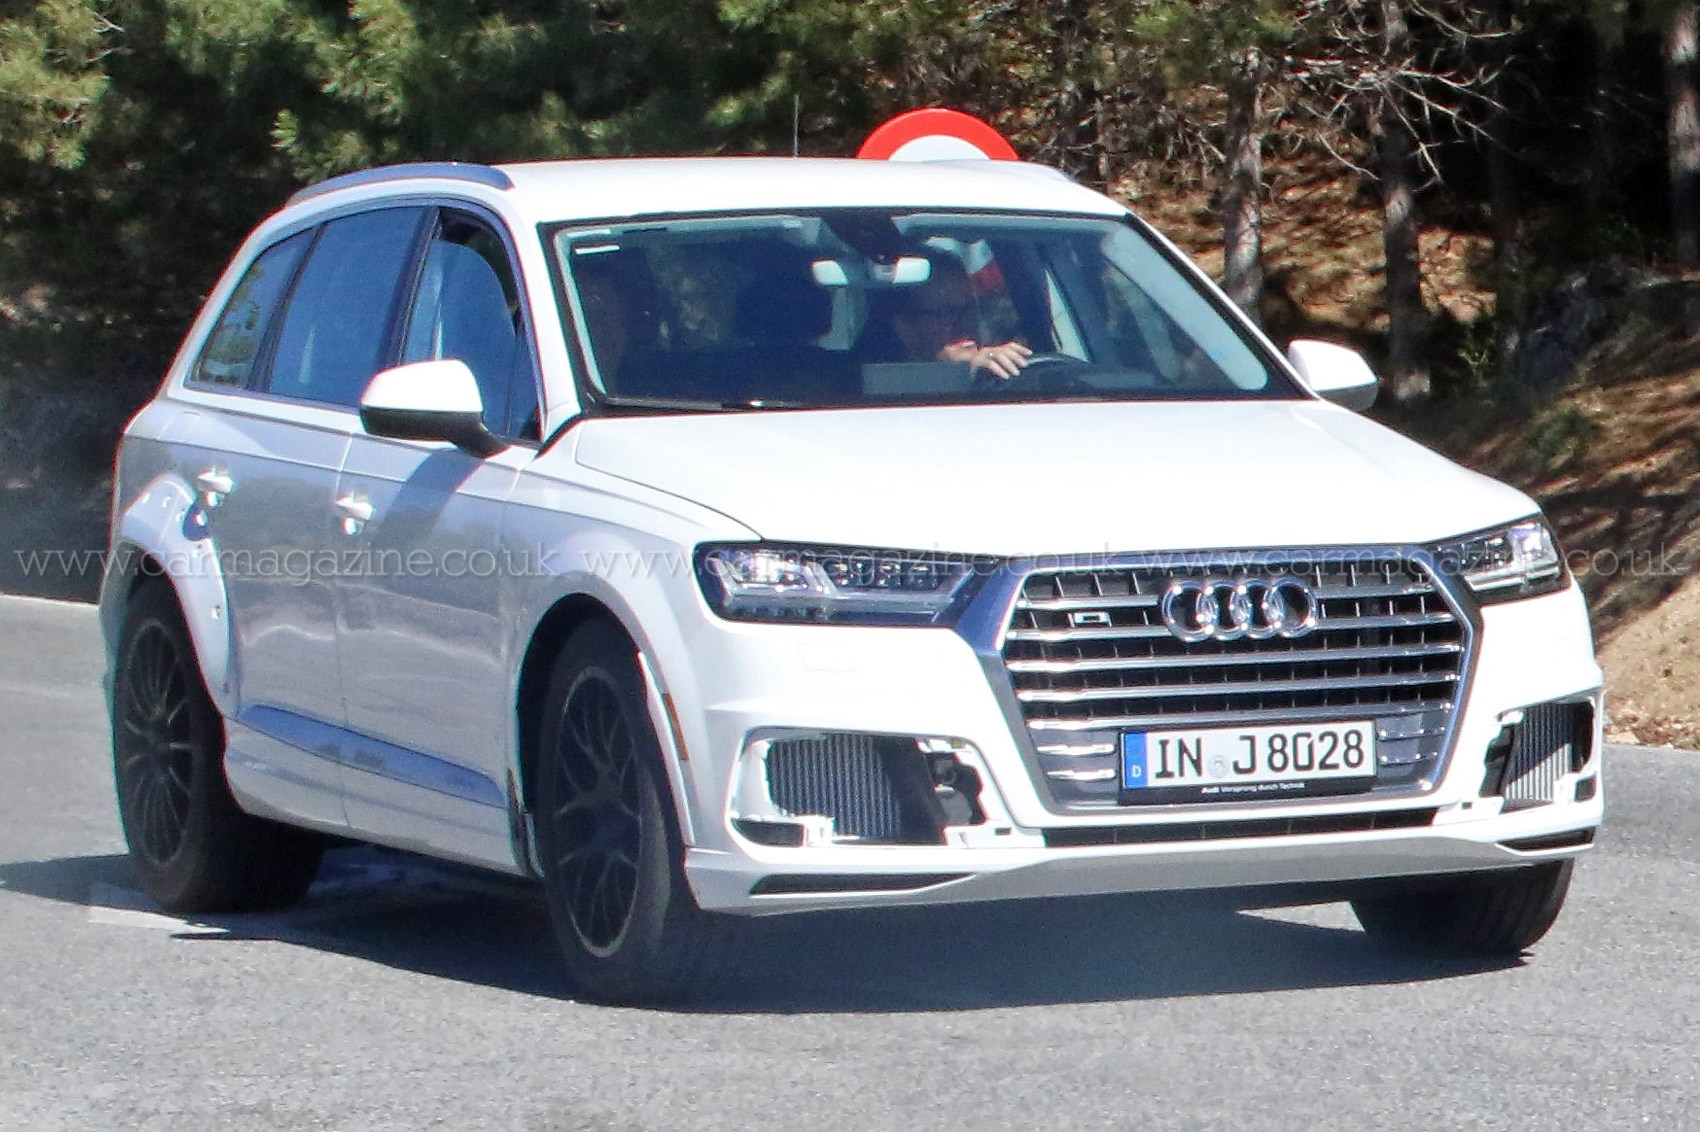 Hyundai Spy Shots >> It's a Q8, mate: first spy shots of Audi's new luxury SUV by CAR Magazine